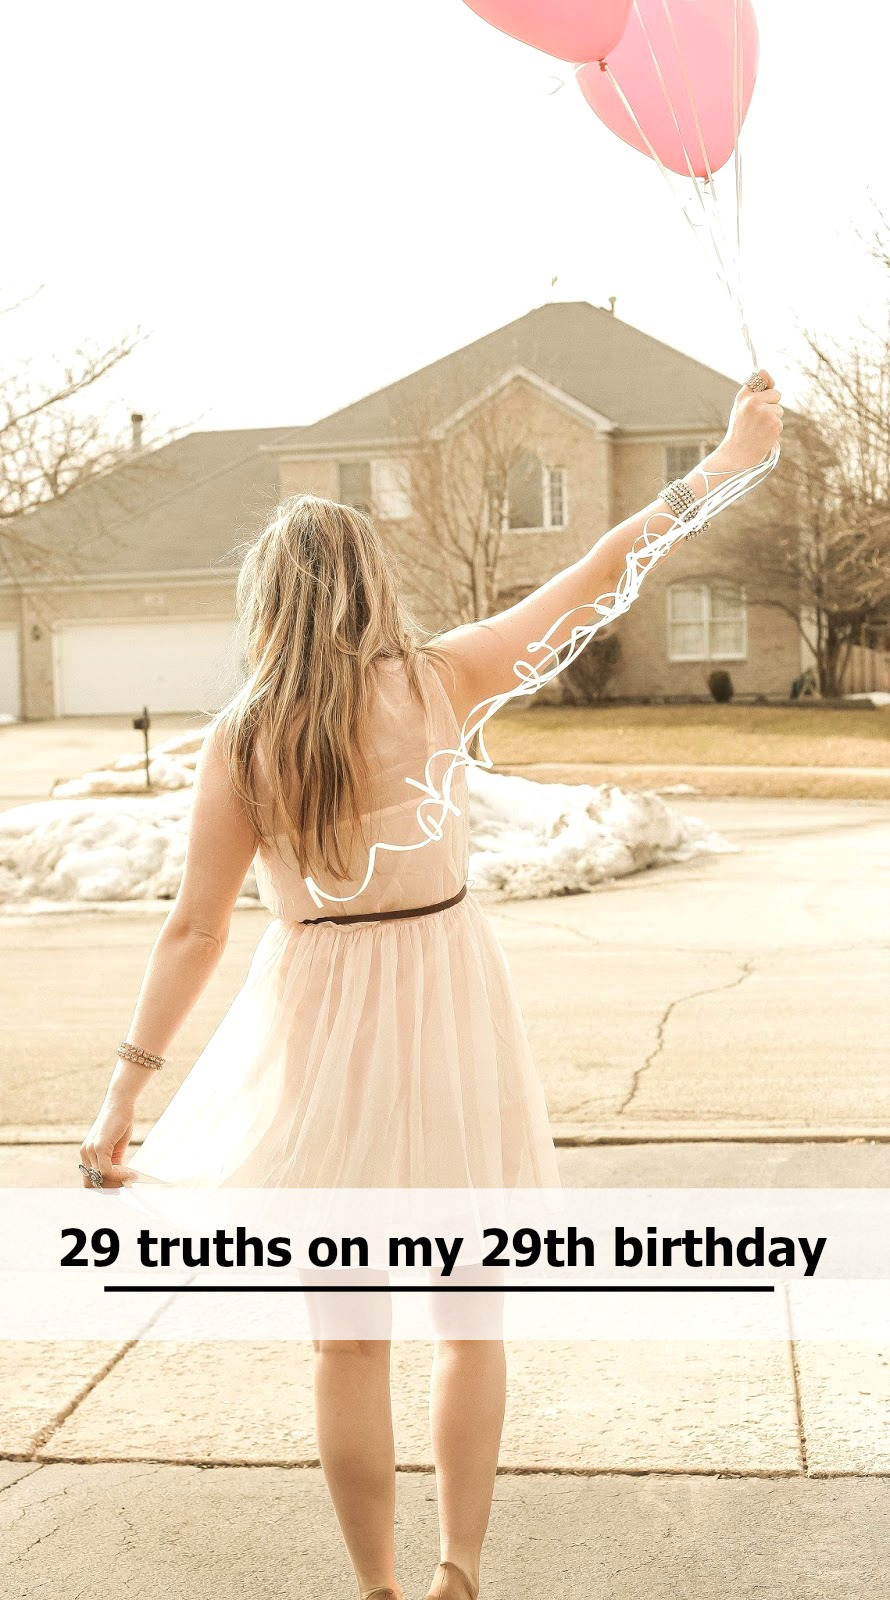 29 lessons in 29 years